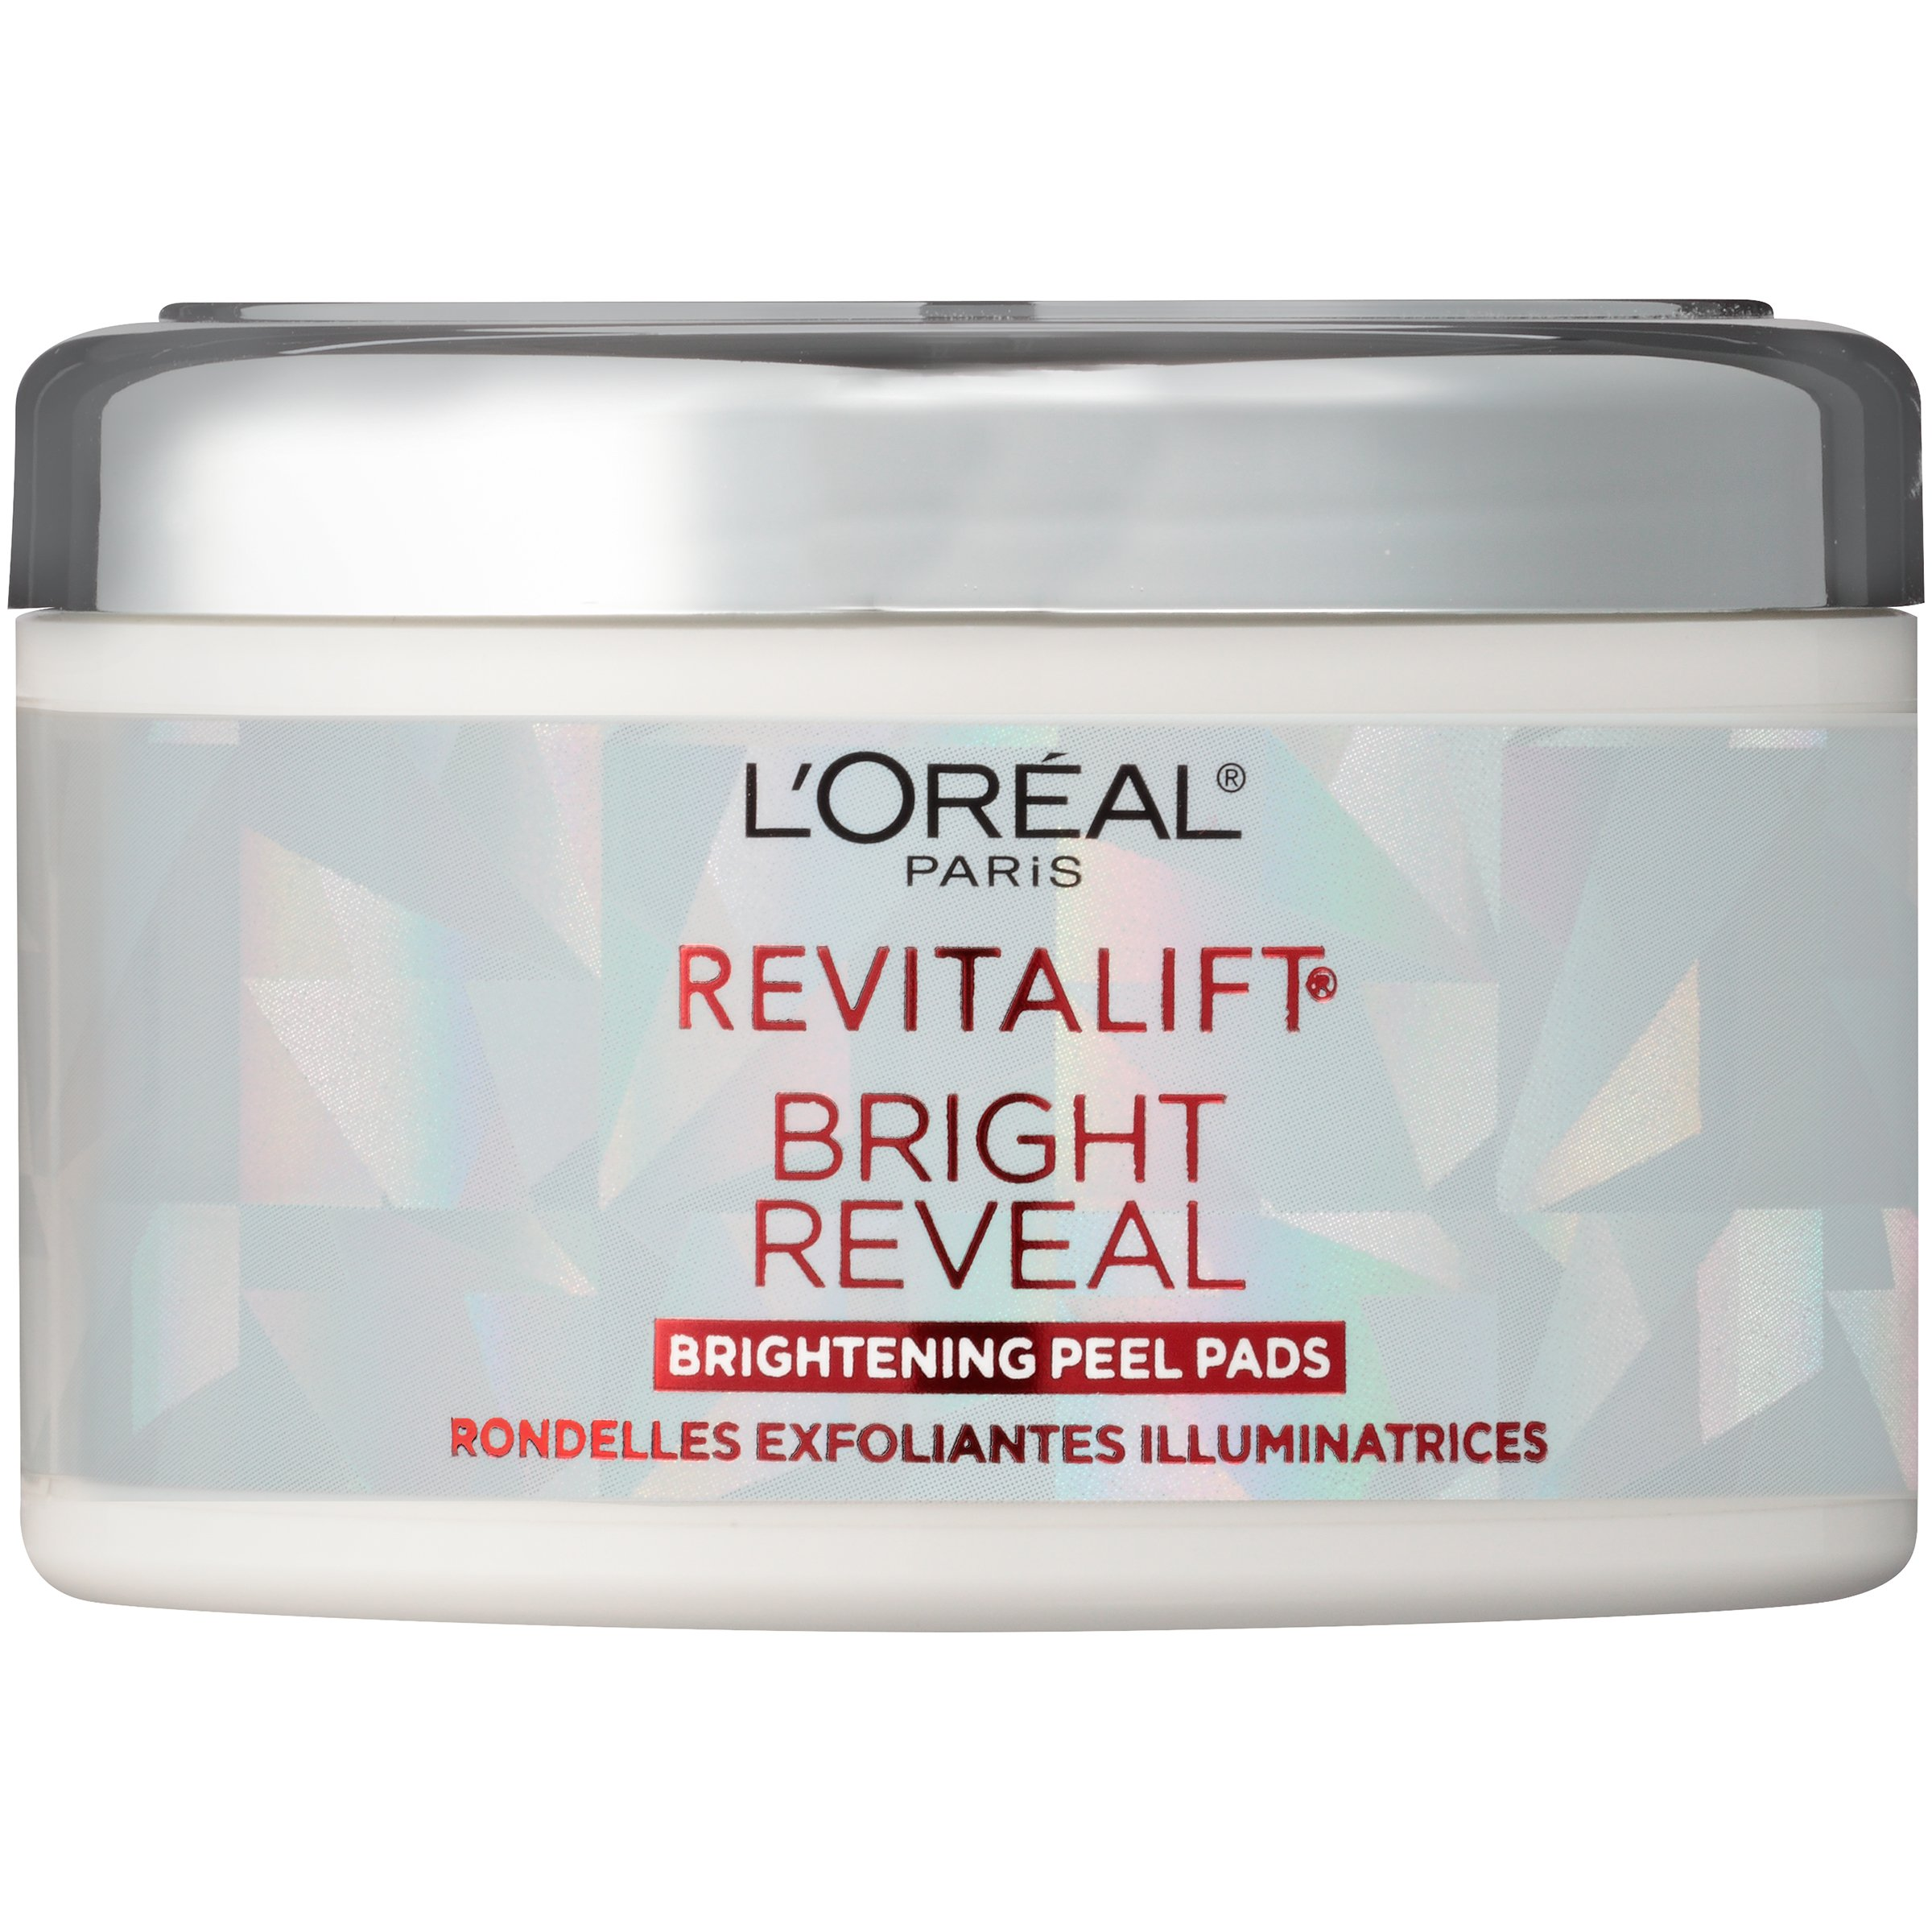 L'Oréal Paris Skincare Revitalift Bright Reveal Peel Pads, Daily Exfoliating Facial Pads to Reduce Wrinkles and Brighten Skin, 30 ct.